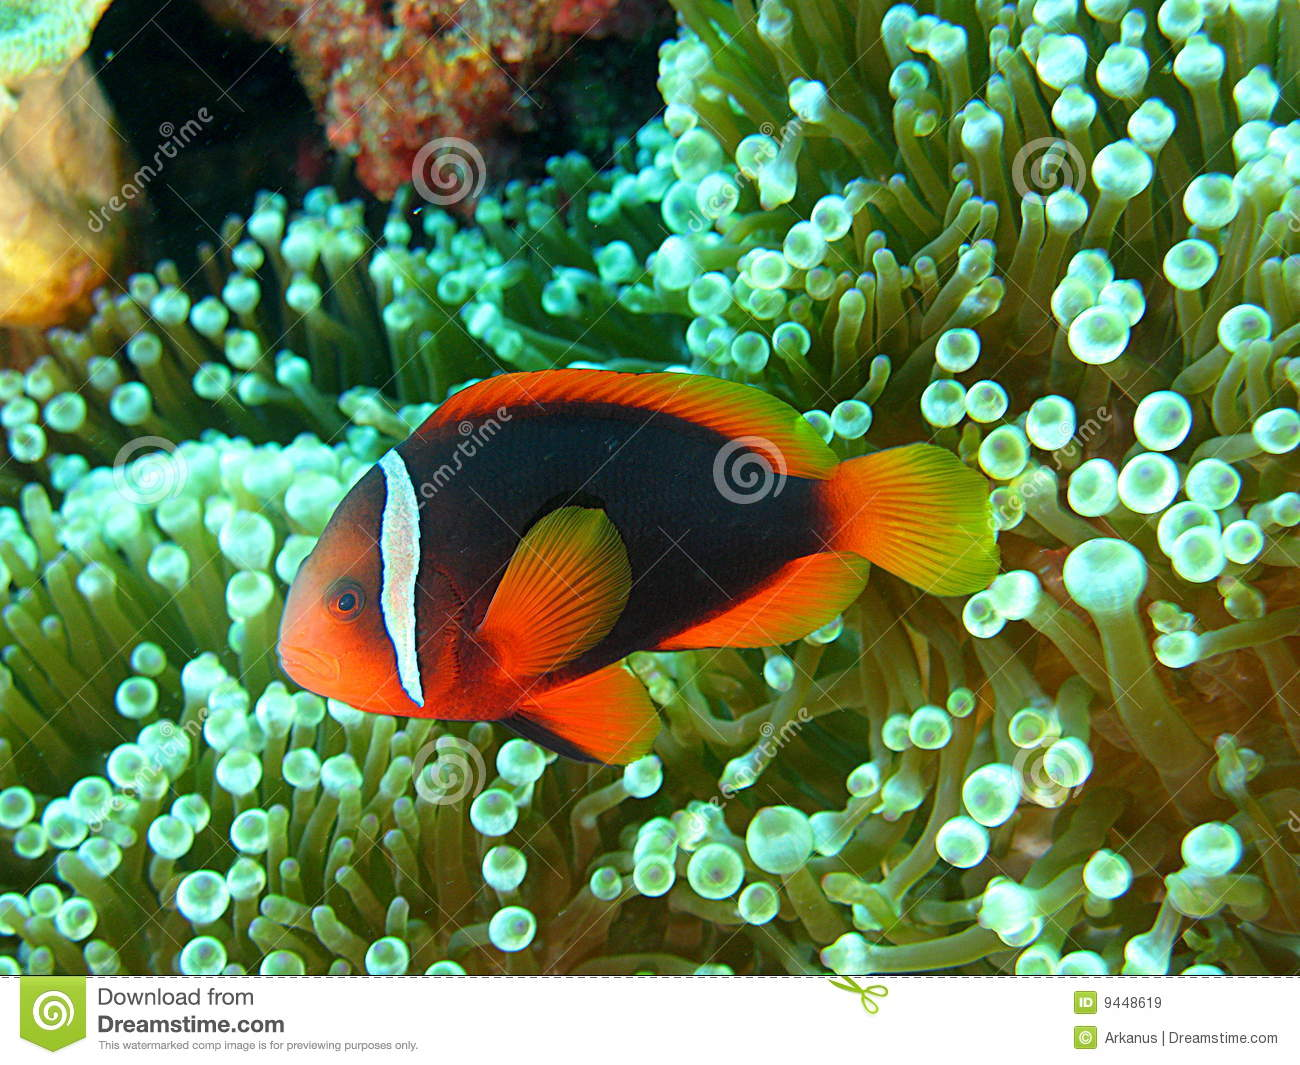 How to Breed Clownfish